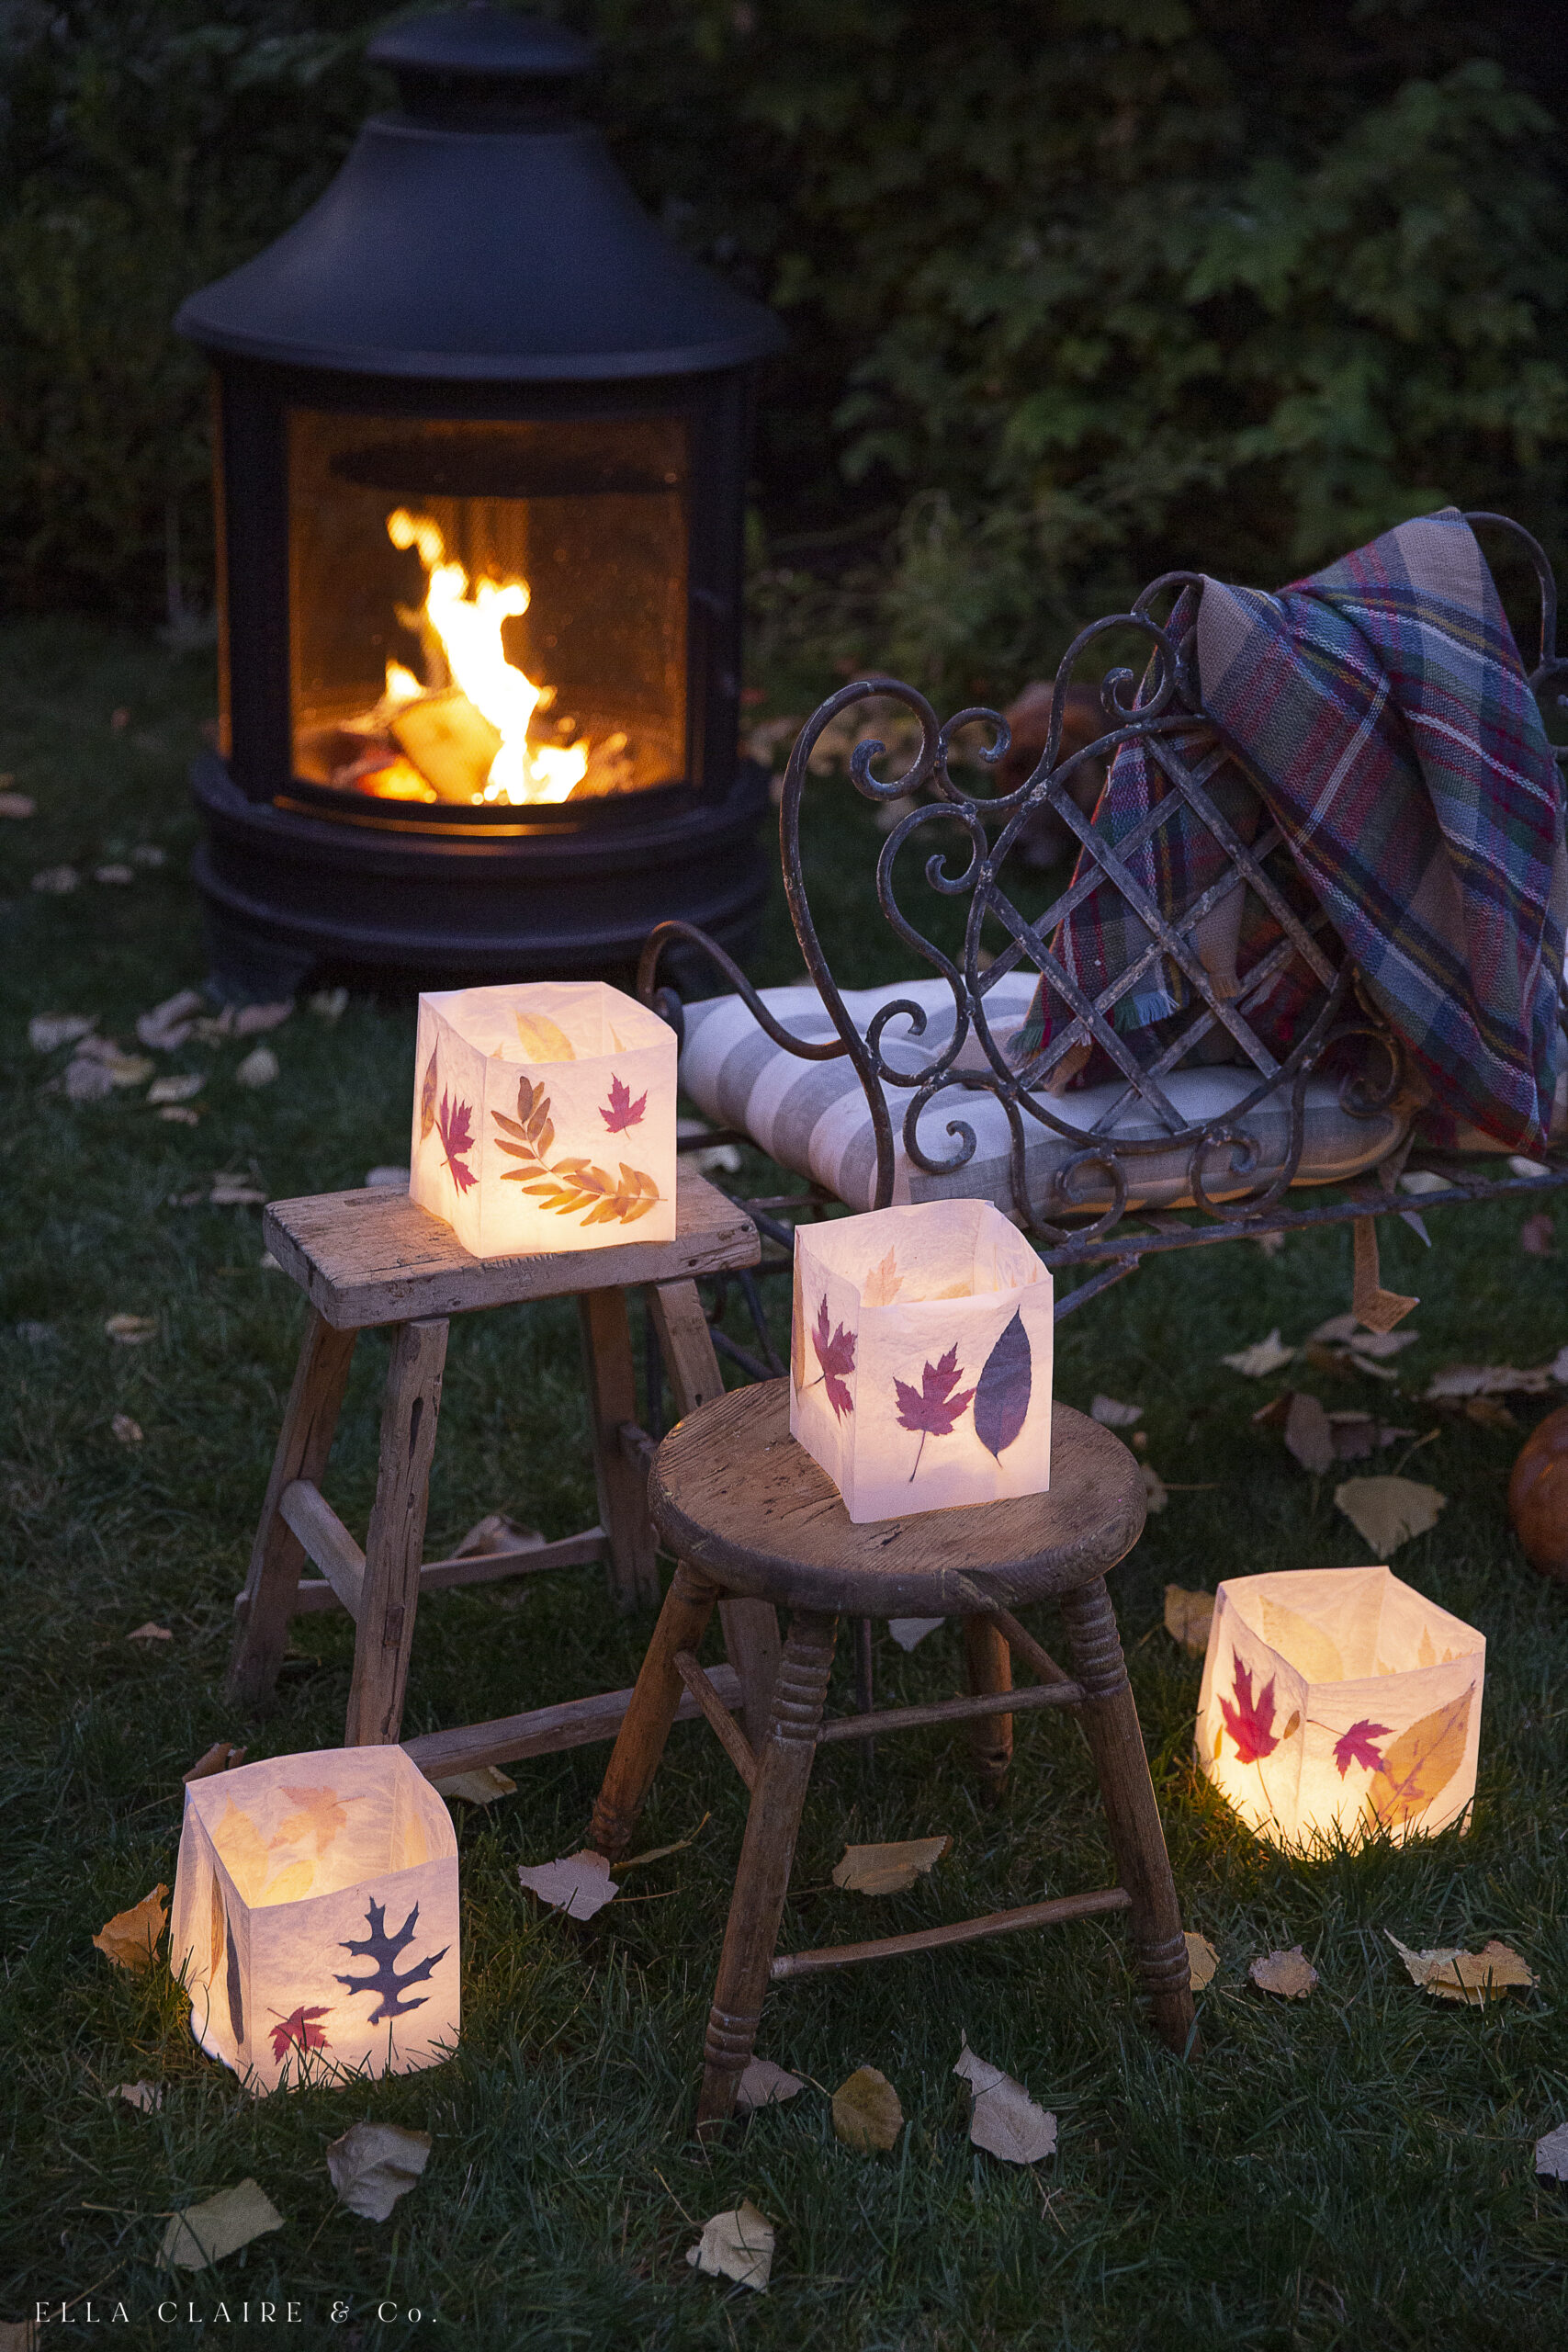 DIY luminaries stacked on stools and ground for outdoor fall decorations